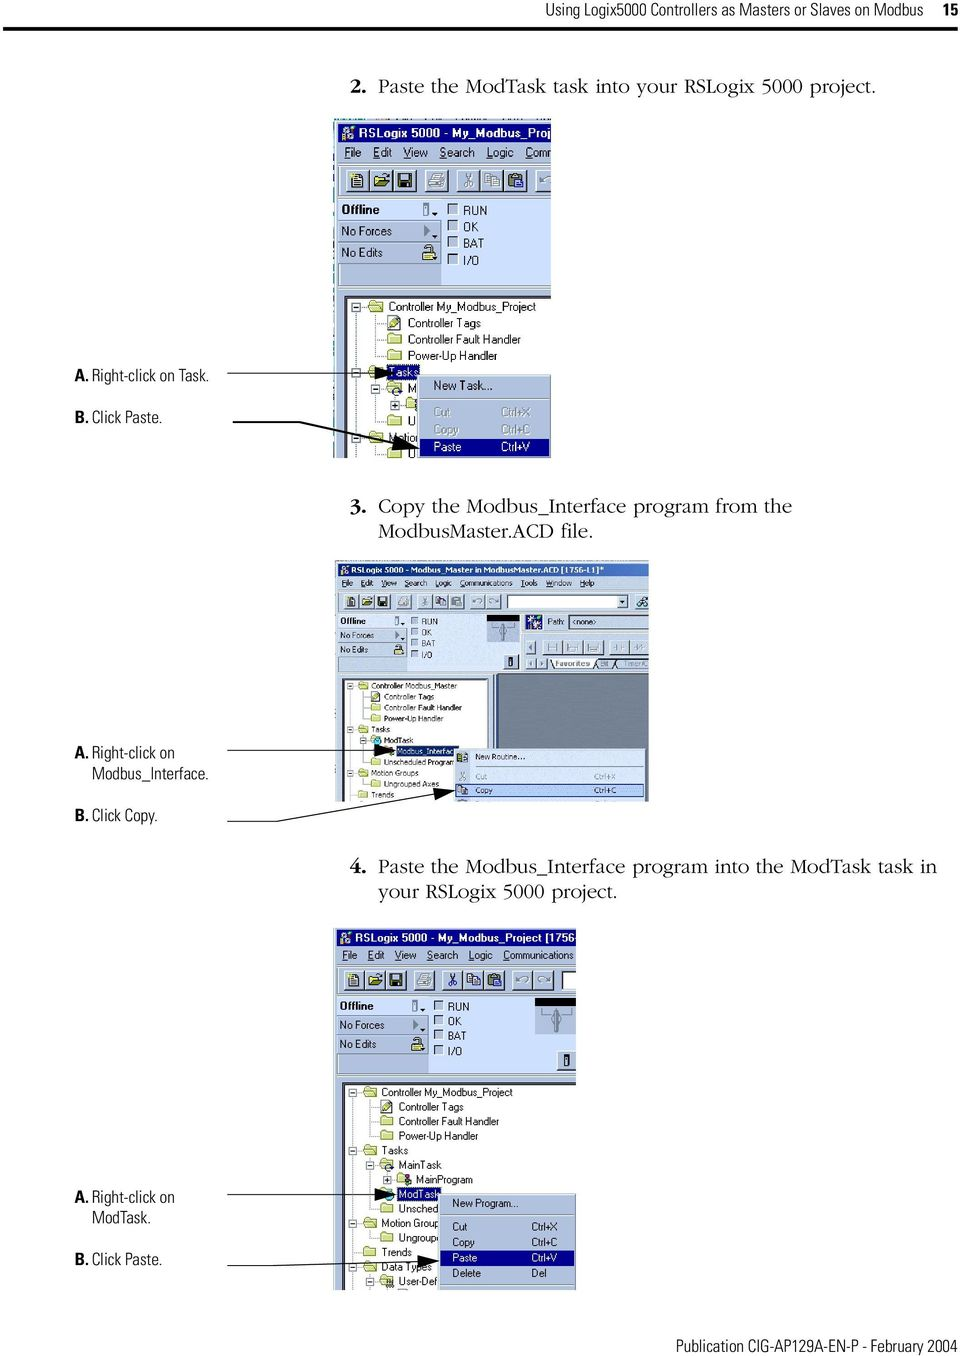 Copy the Modbus_Interface program from the ModbusMaster.ACD file. A. Right-click on Modbus_Interface.